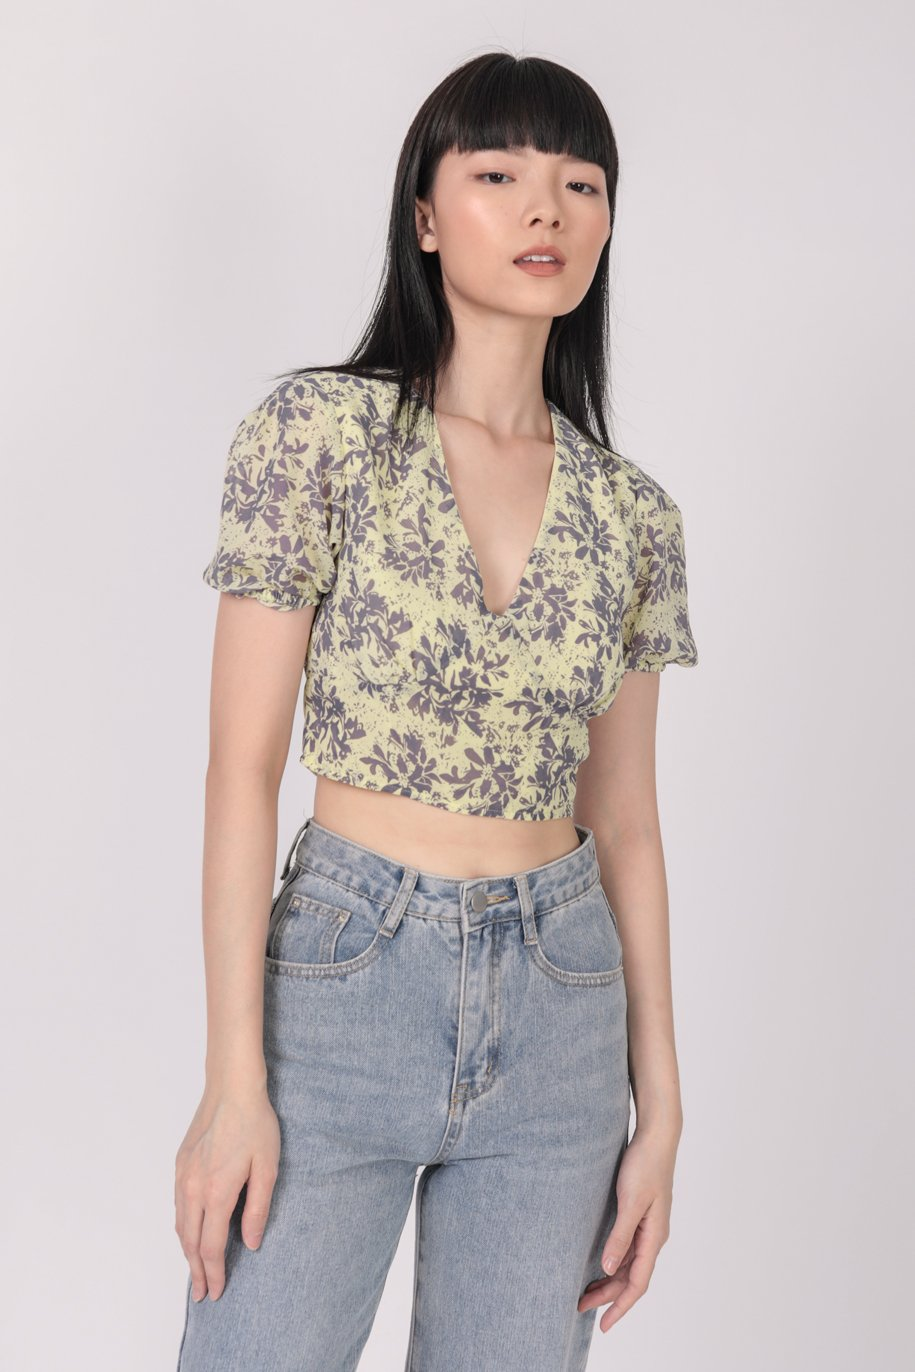 Perci Cropped Top (Hibiscus)